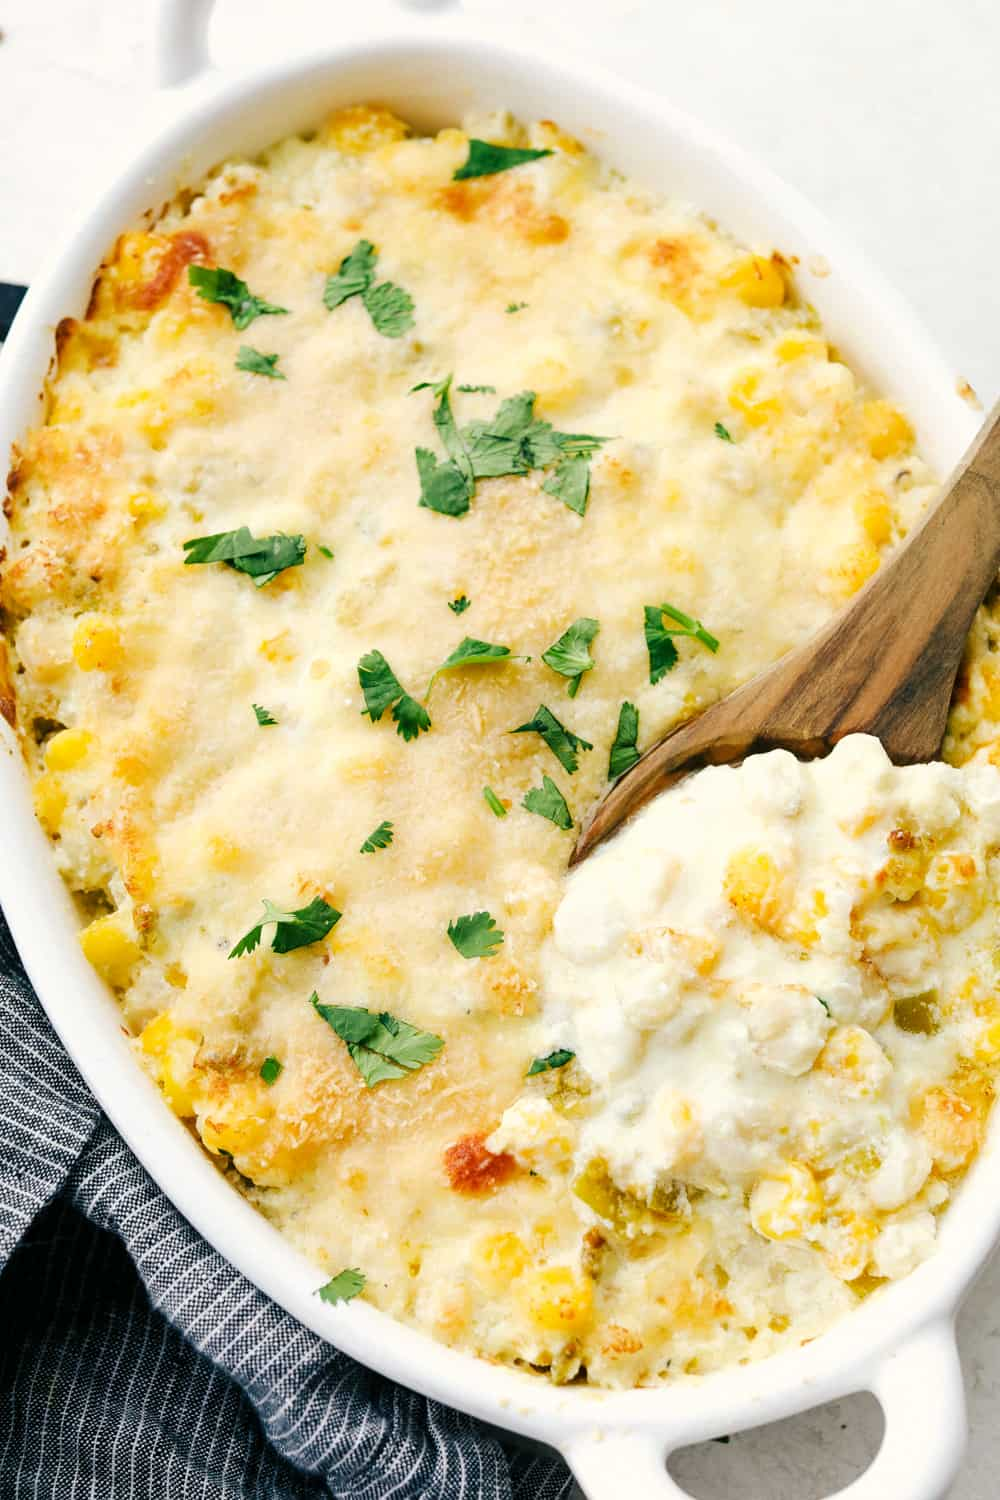 Creamy Hominy Casserole in a white dish.